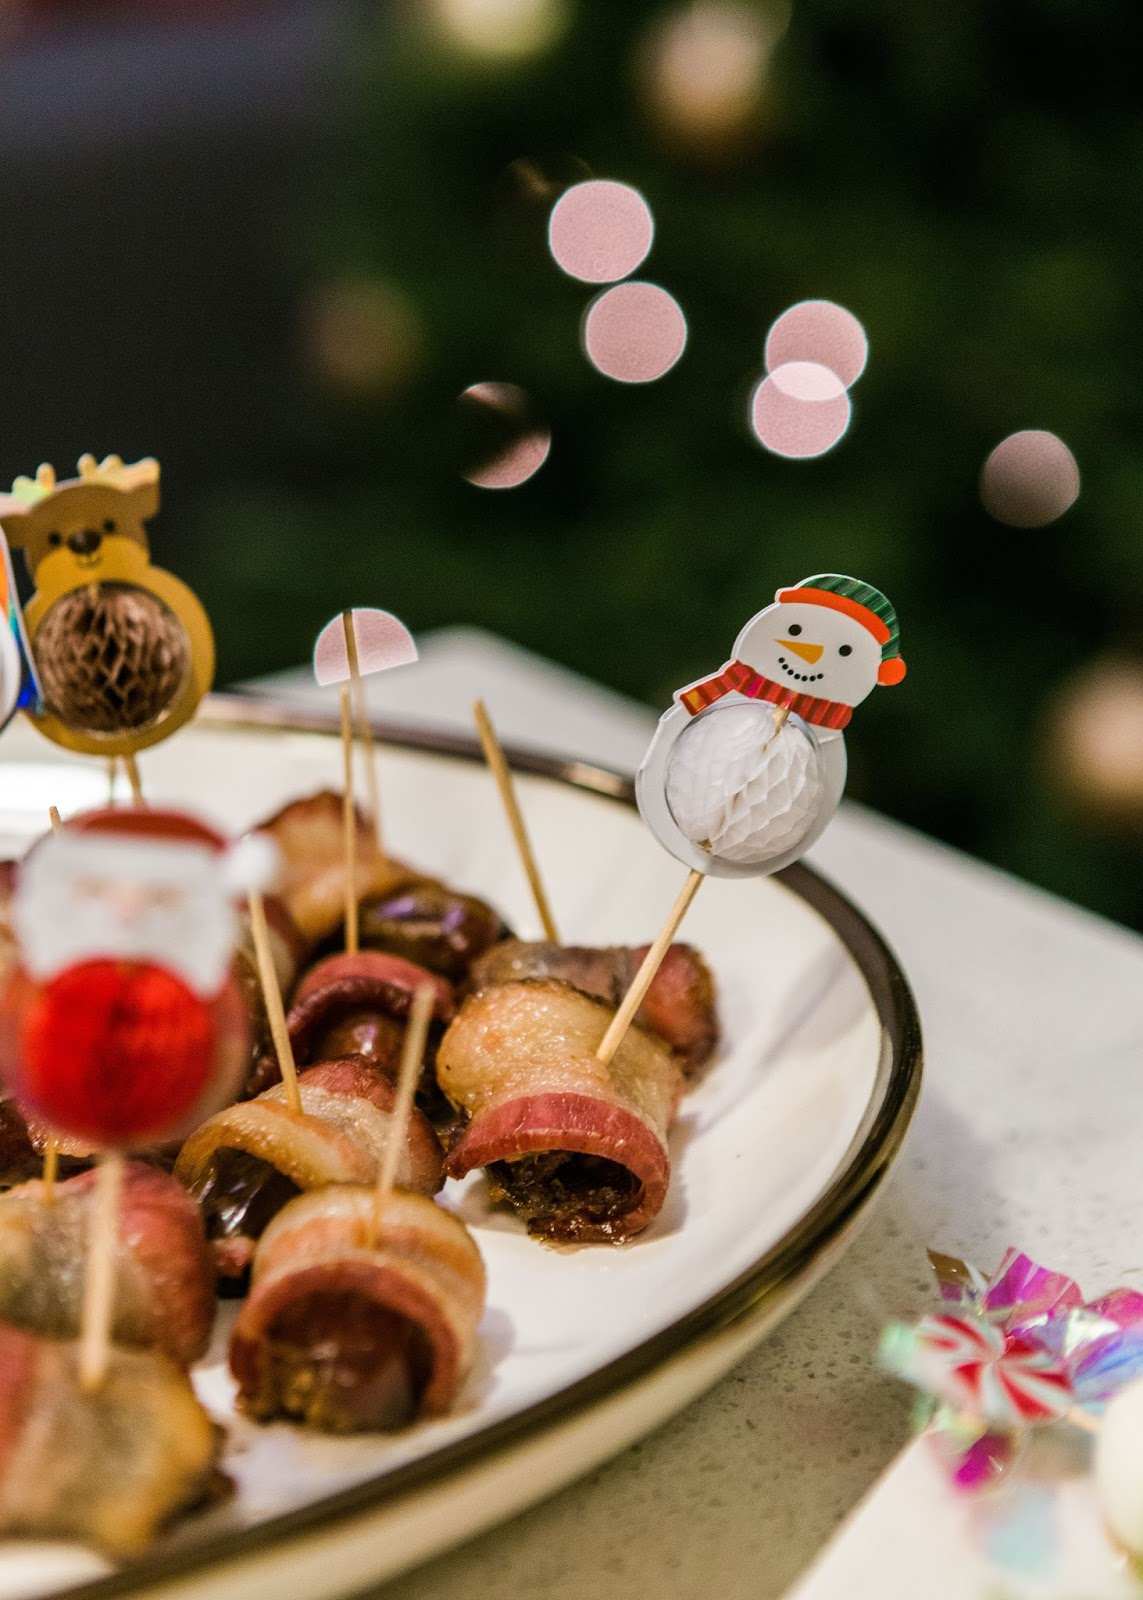 bacon wrapped dates, party appetizers, how to decorate for holiday party